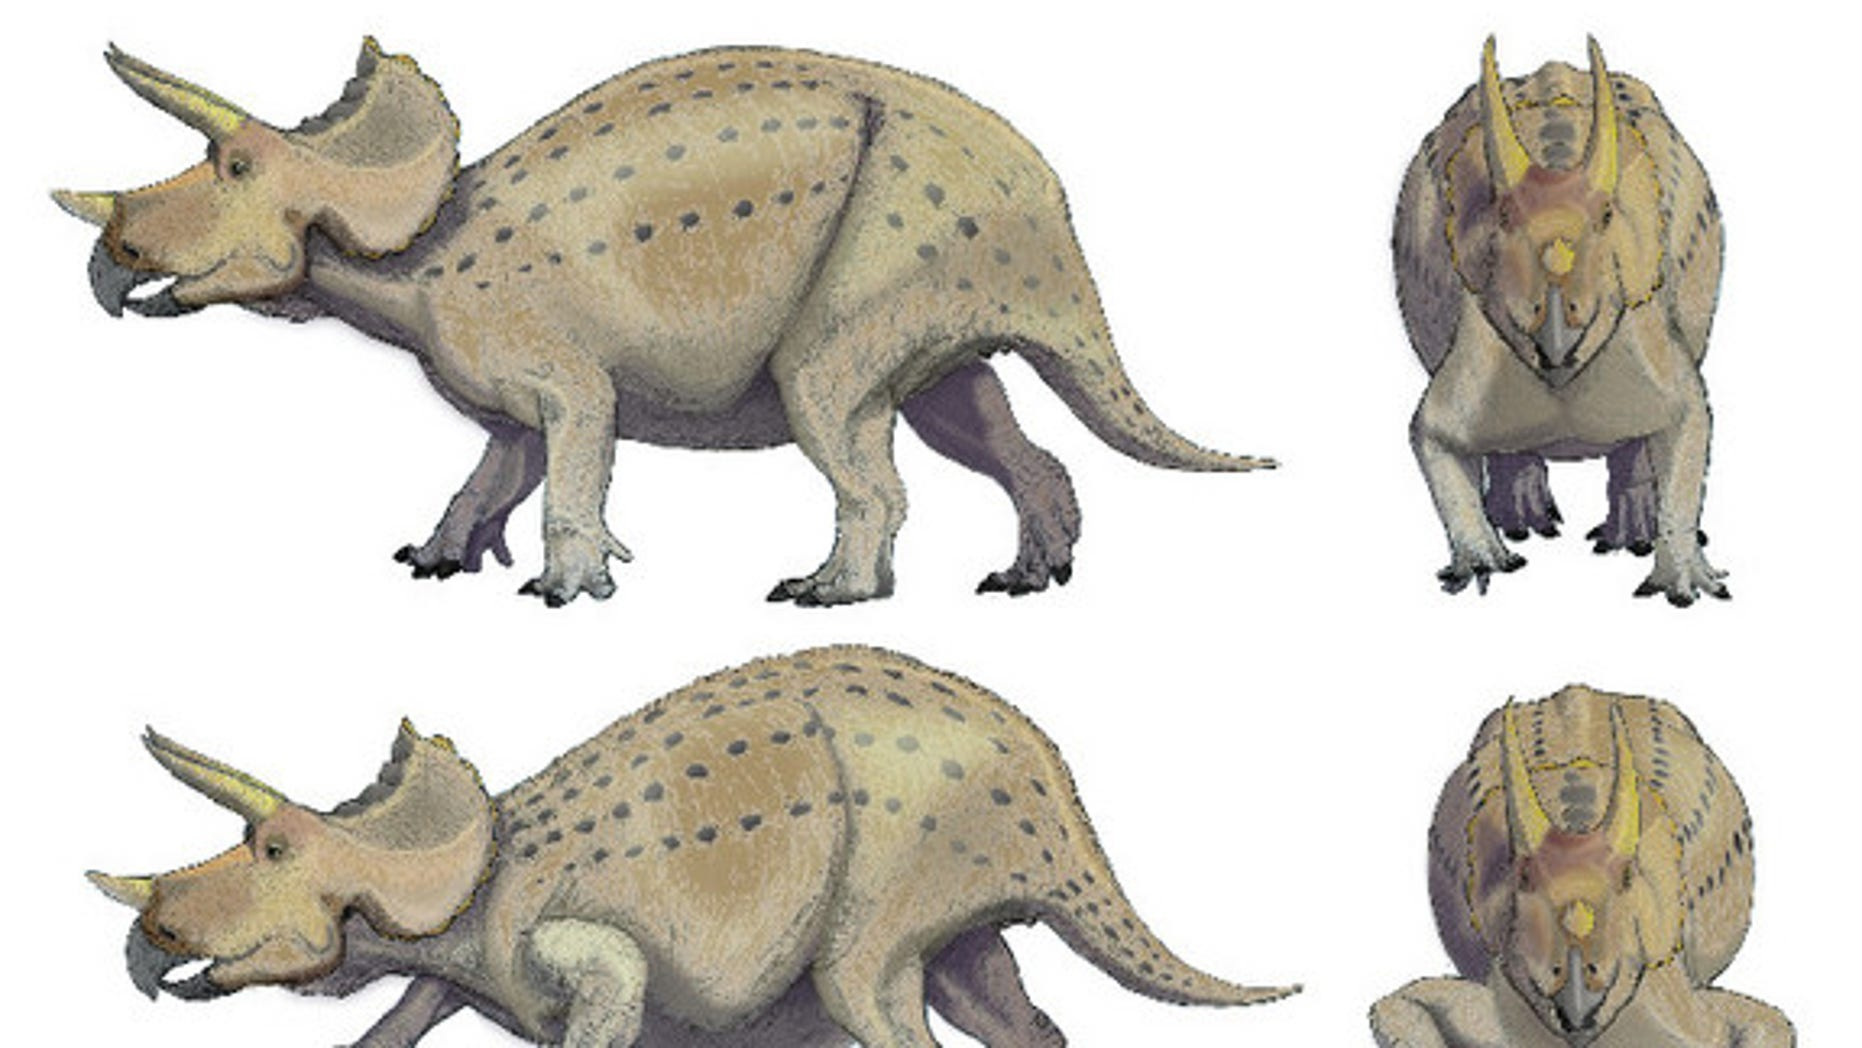 Researchers think Triceratops had forelimbs with a more mammal-like posture as in the top images, versus the more reptile-like forelimb posture shown below.